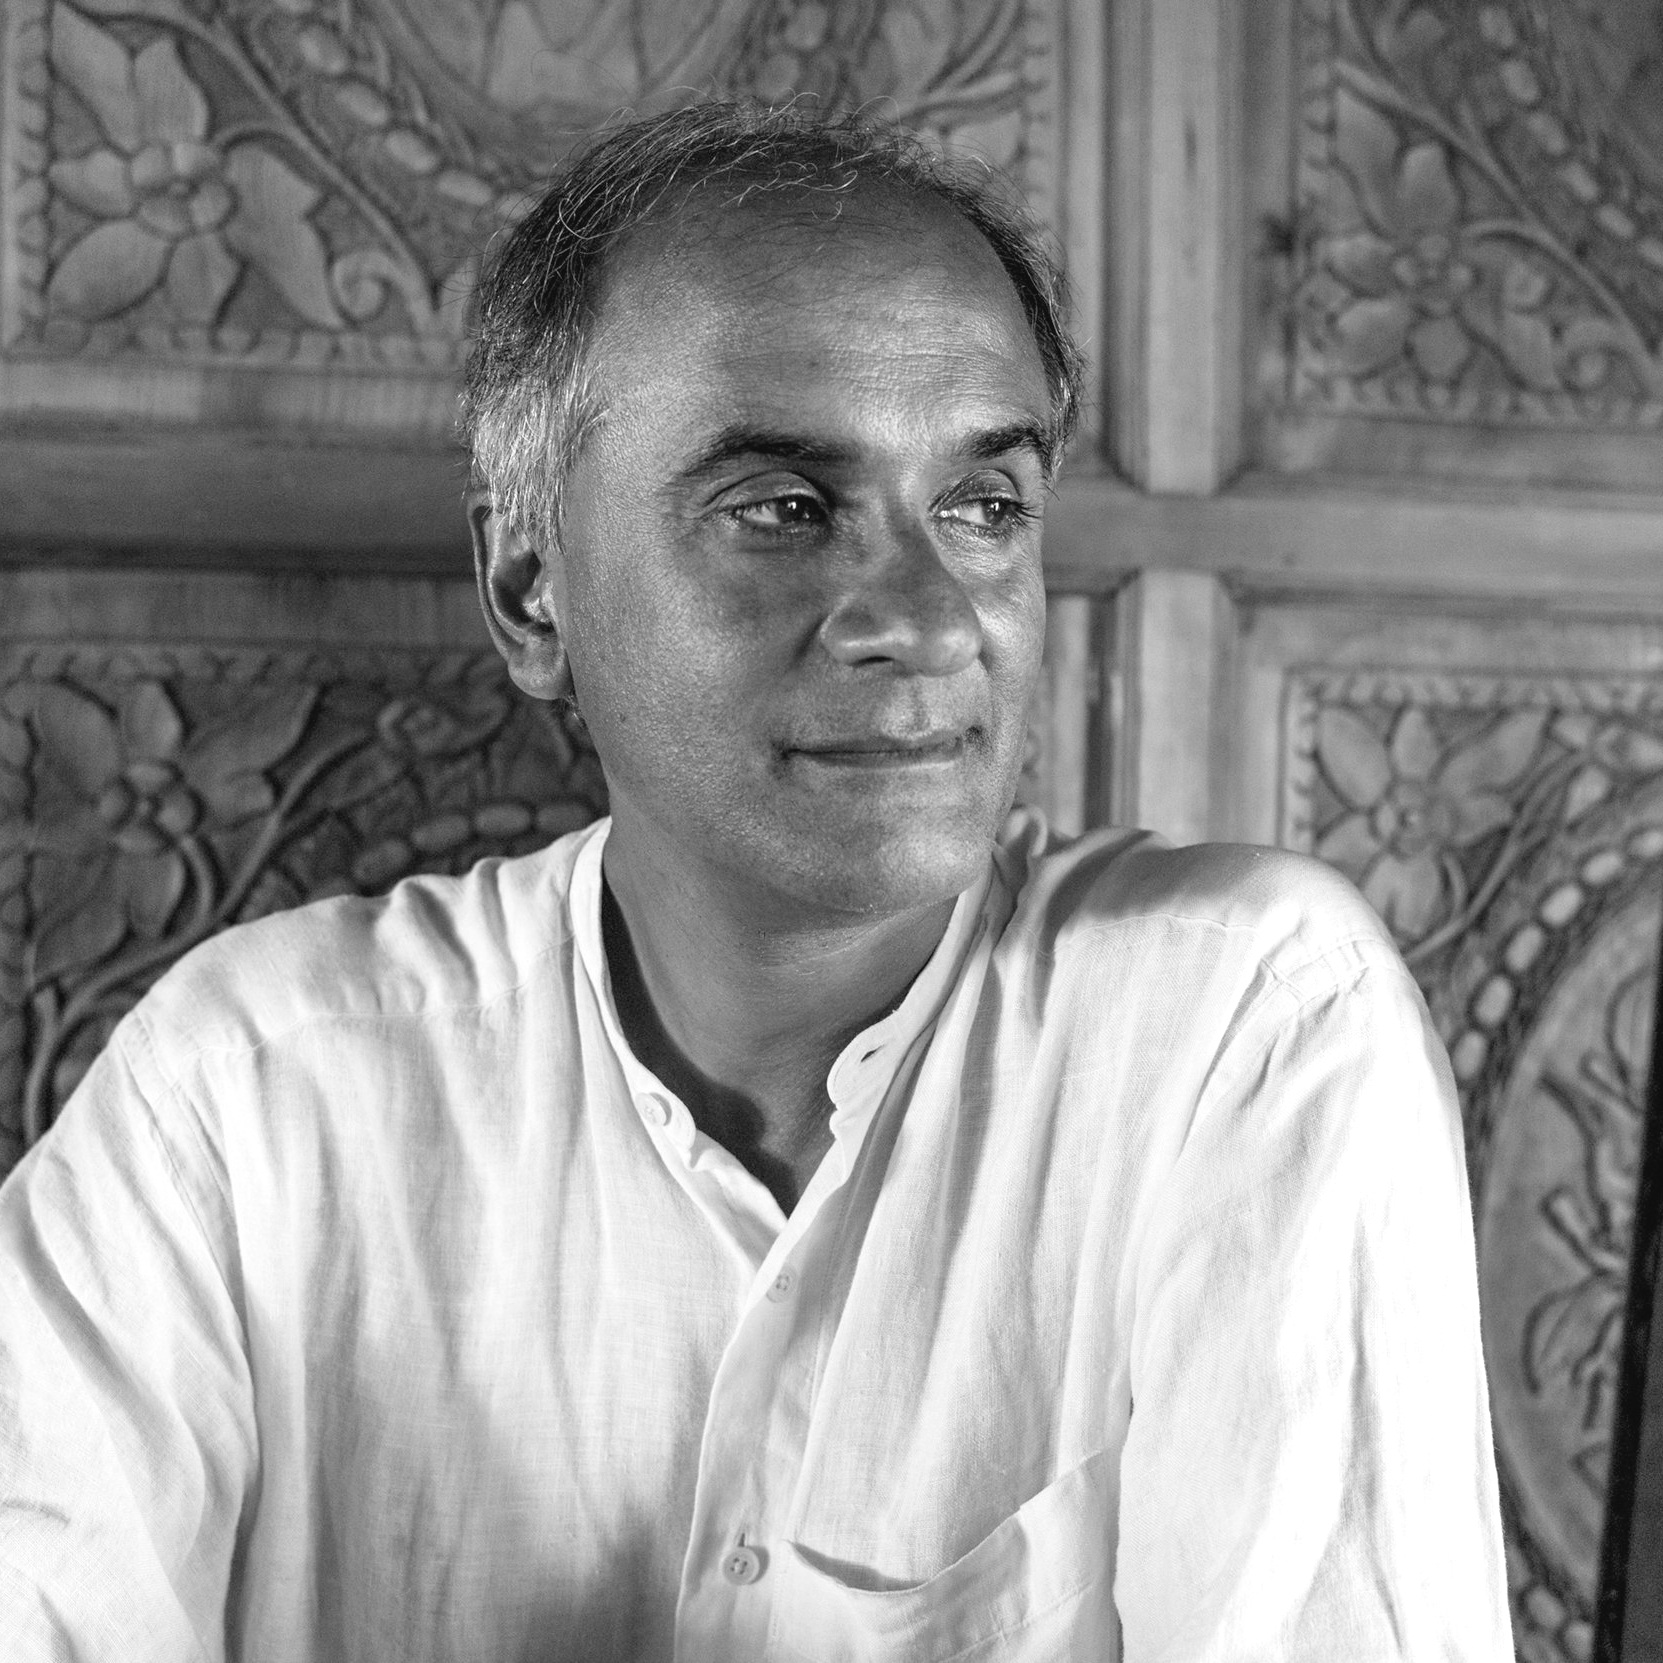 PICO IYER - Pico Iyer is the author of more than a dozen books, translated into twenty-three languages, including international favourites such as Video Night in Kathmandu (1988), The Lady and the Monk (1991) and The Global Soul (2000). Pico's latest book, This Could Be Home, offering a seasoned observer's meditations on cultures everywhere.He has given three TED Talks in three years, and they have attracted more than eight million views so far. A graduate of Eton, Oxford and Harvard, he is currently Ferris Professor of Journalism at Princeton.